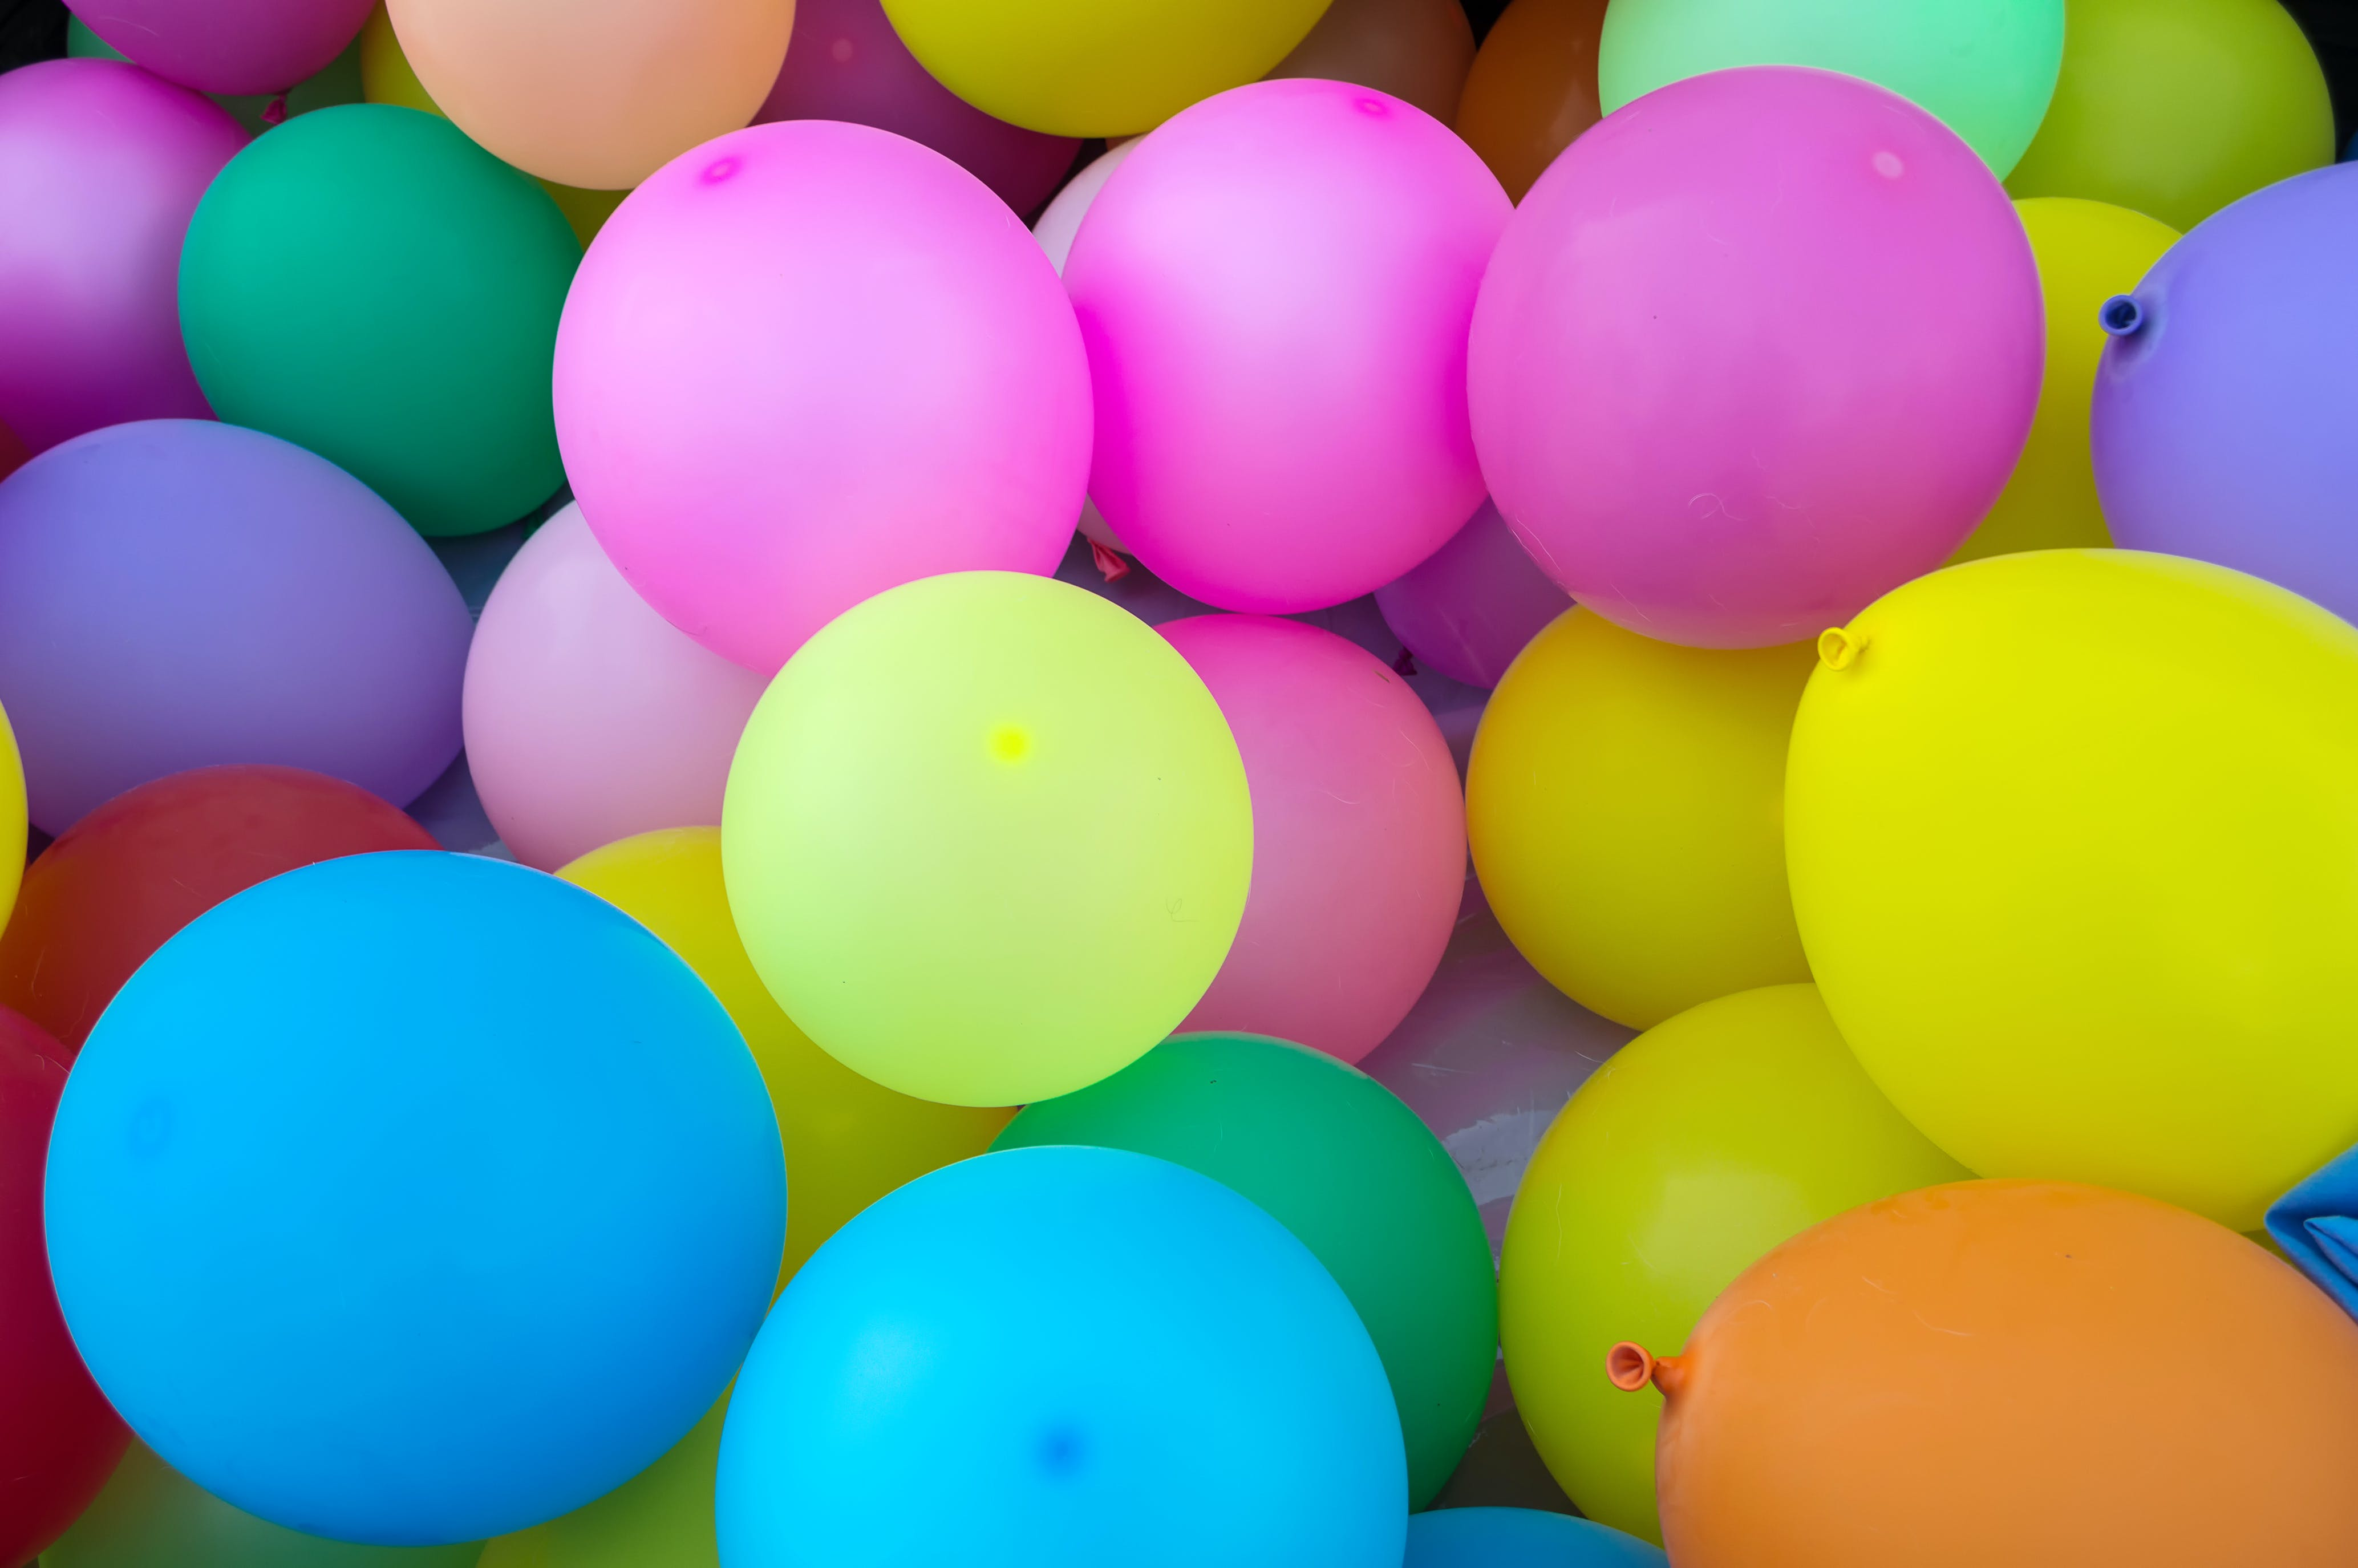 Free stock photo of balloons, children, Color balloons, colors